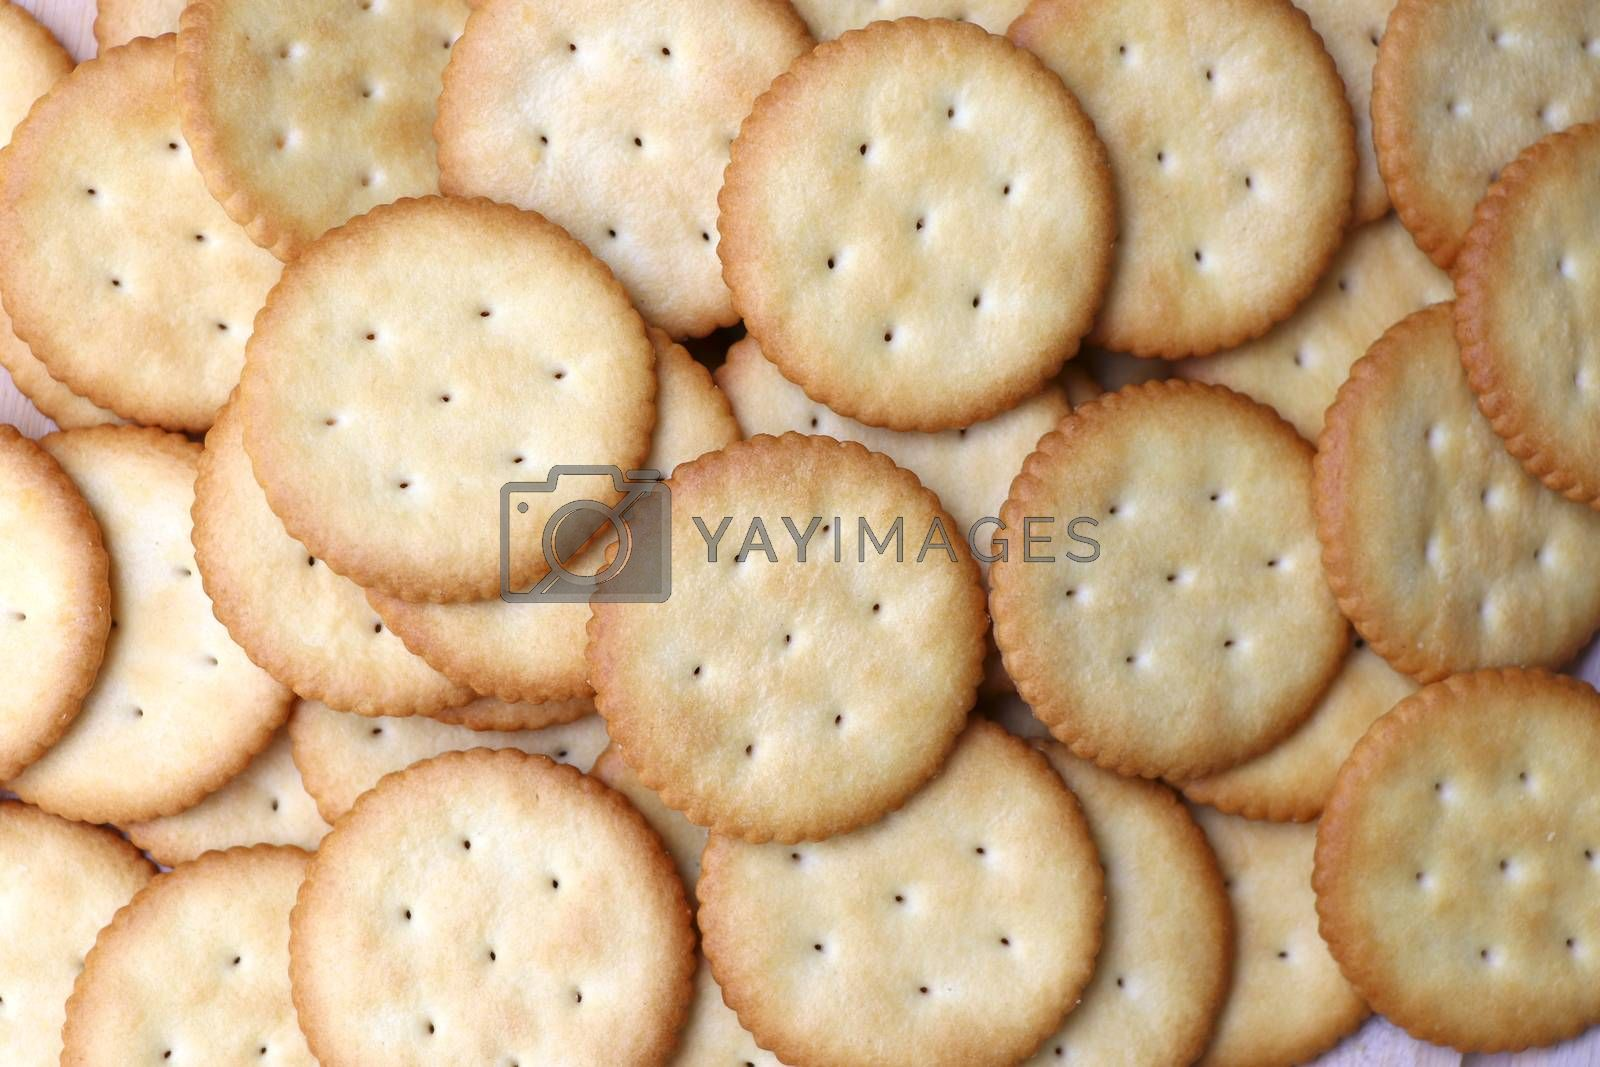 Biscuits cracker background. Crackers lay on the table.